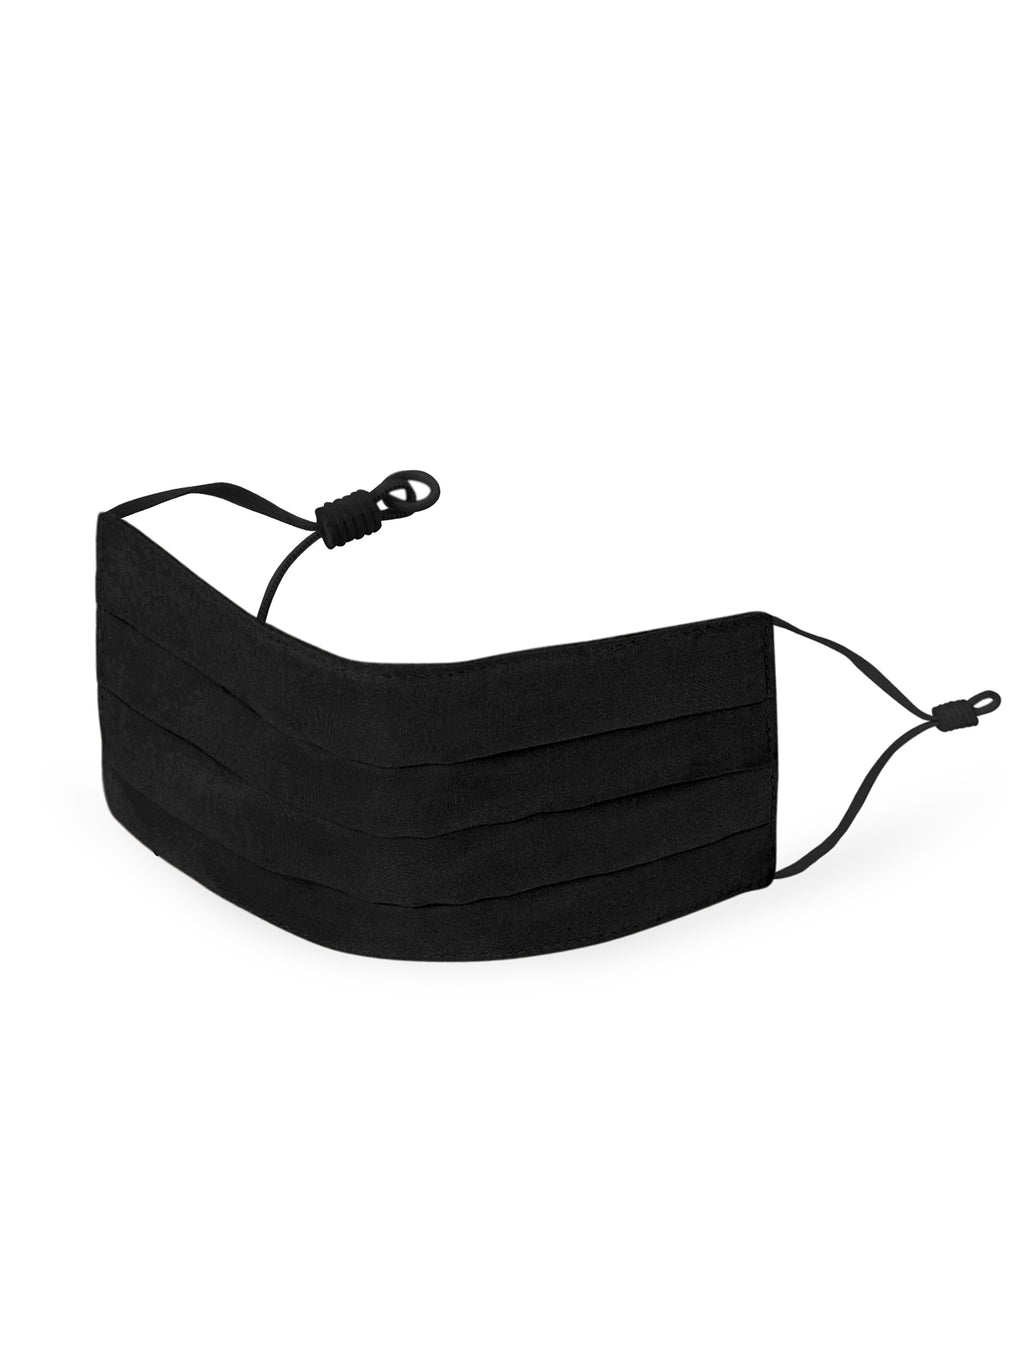 Reusable Pleated Silk Face Mask- Black